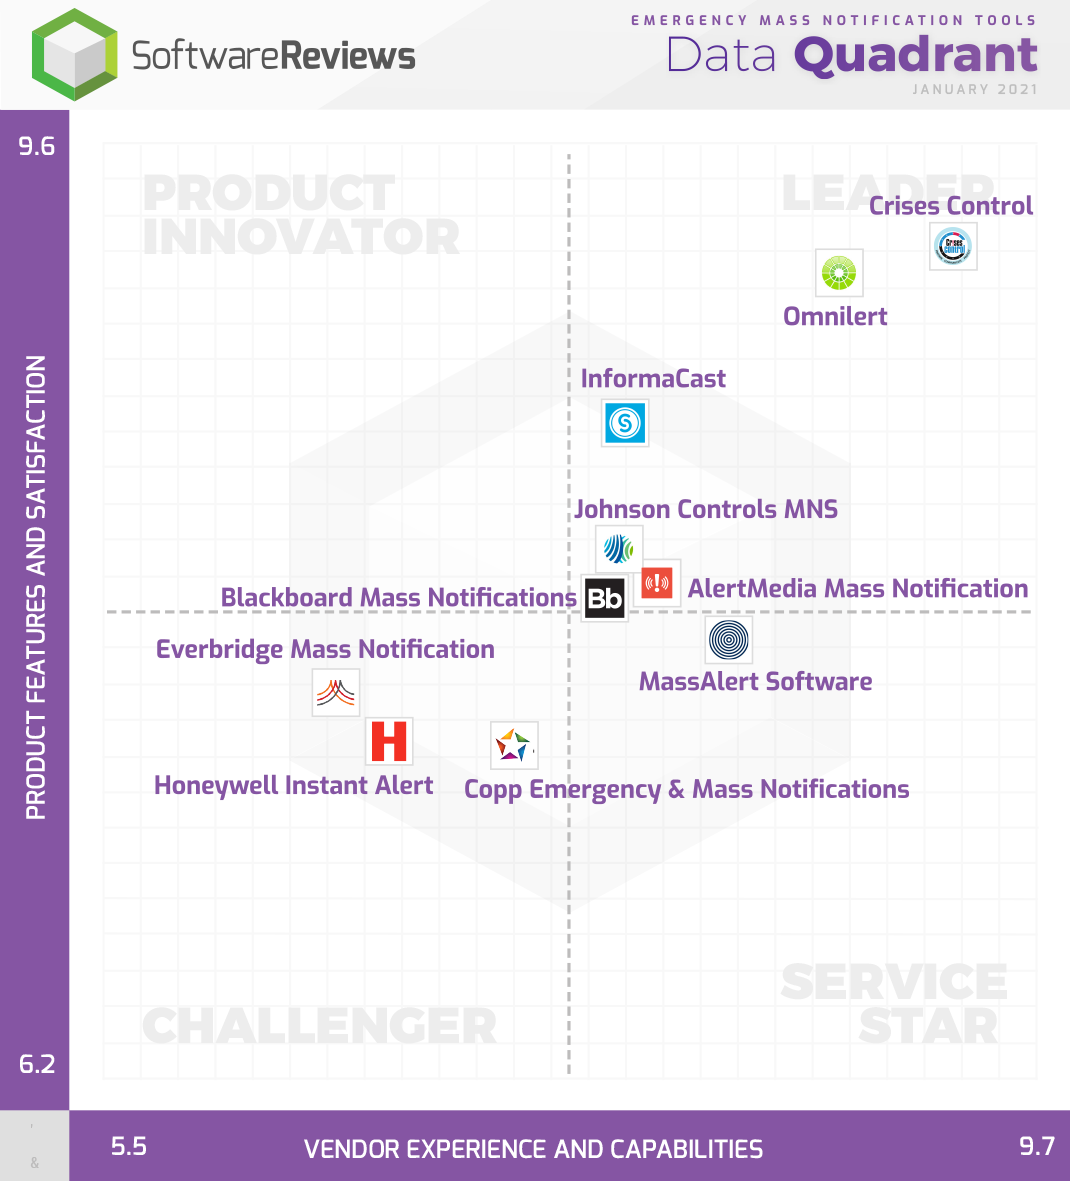 Emergency Mass Notification Tools Data Quadrant